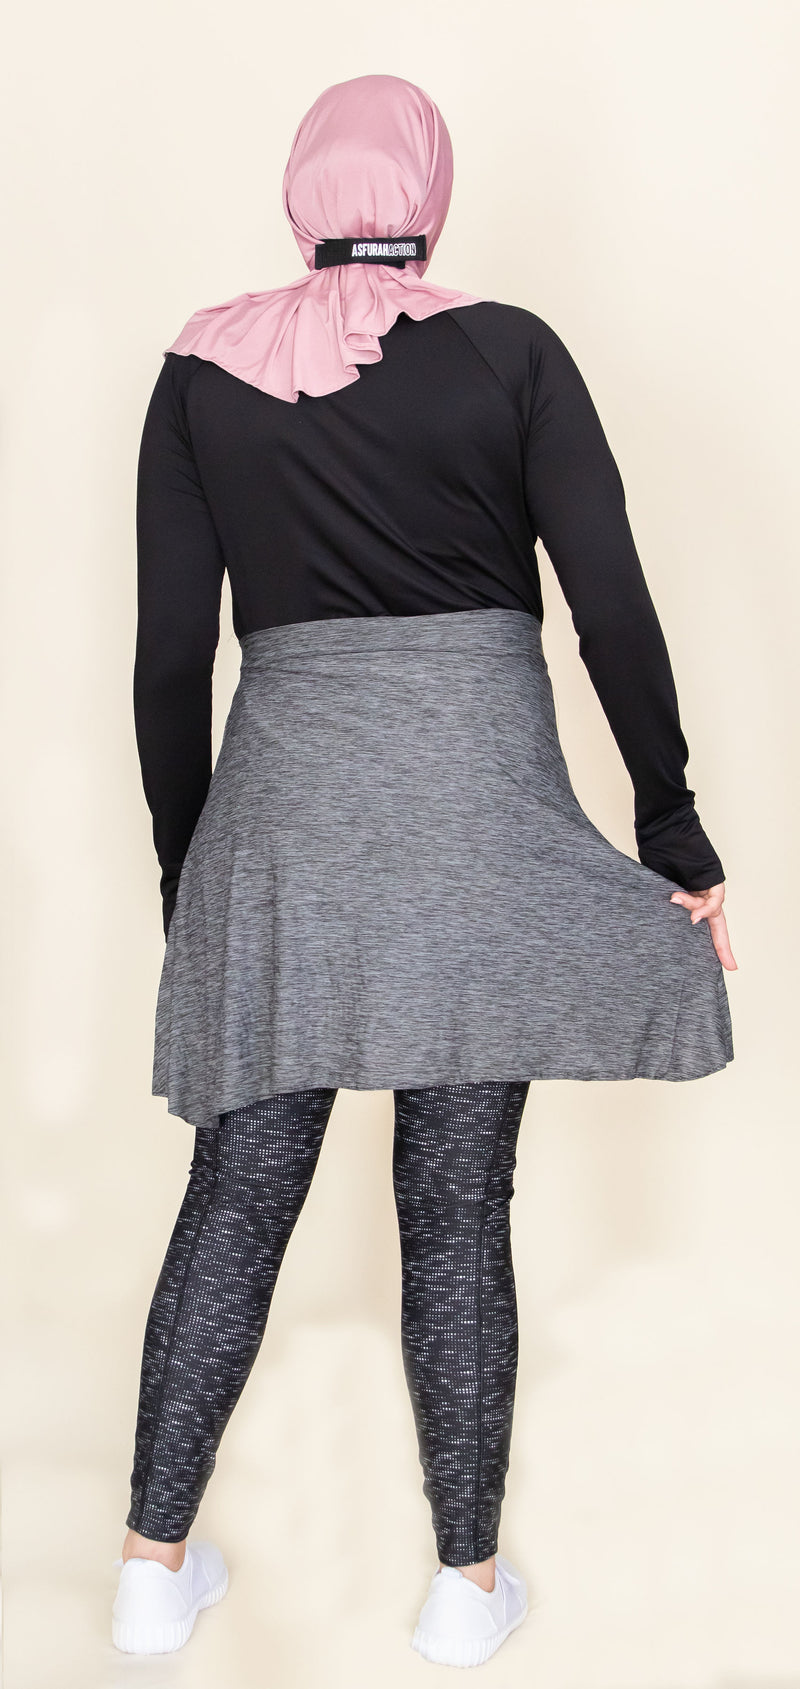 Modesty Cover-Up Athletic Skirt